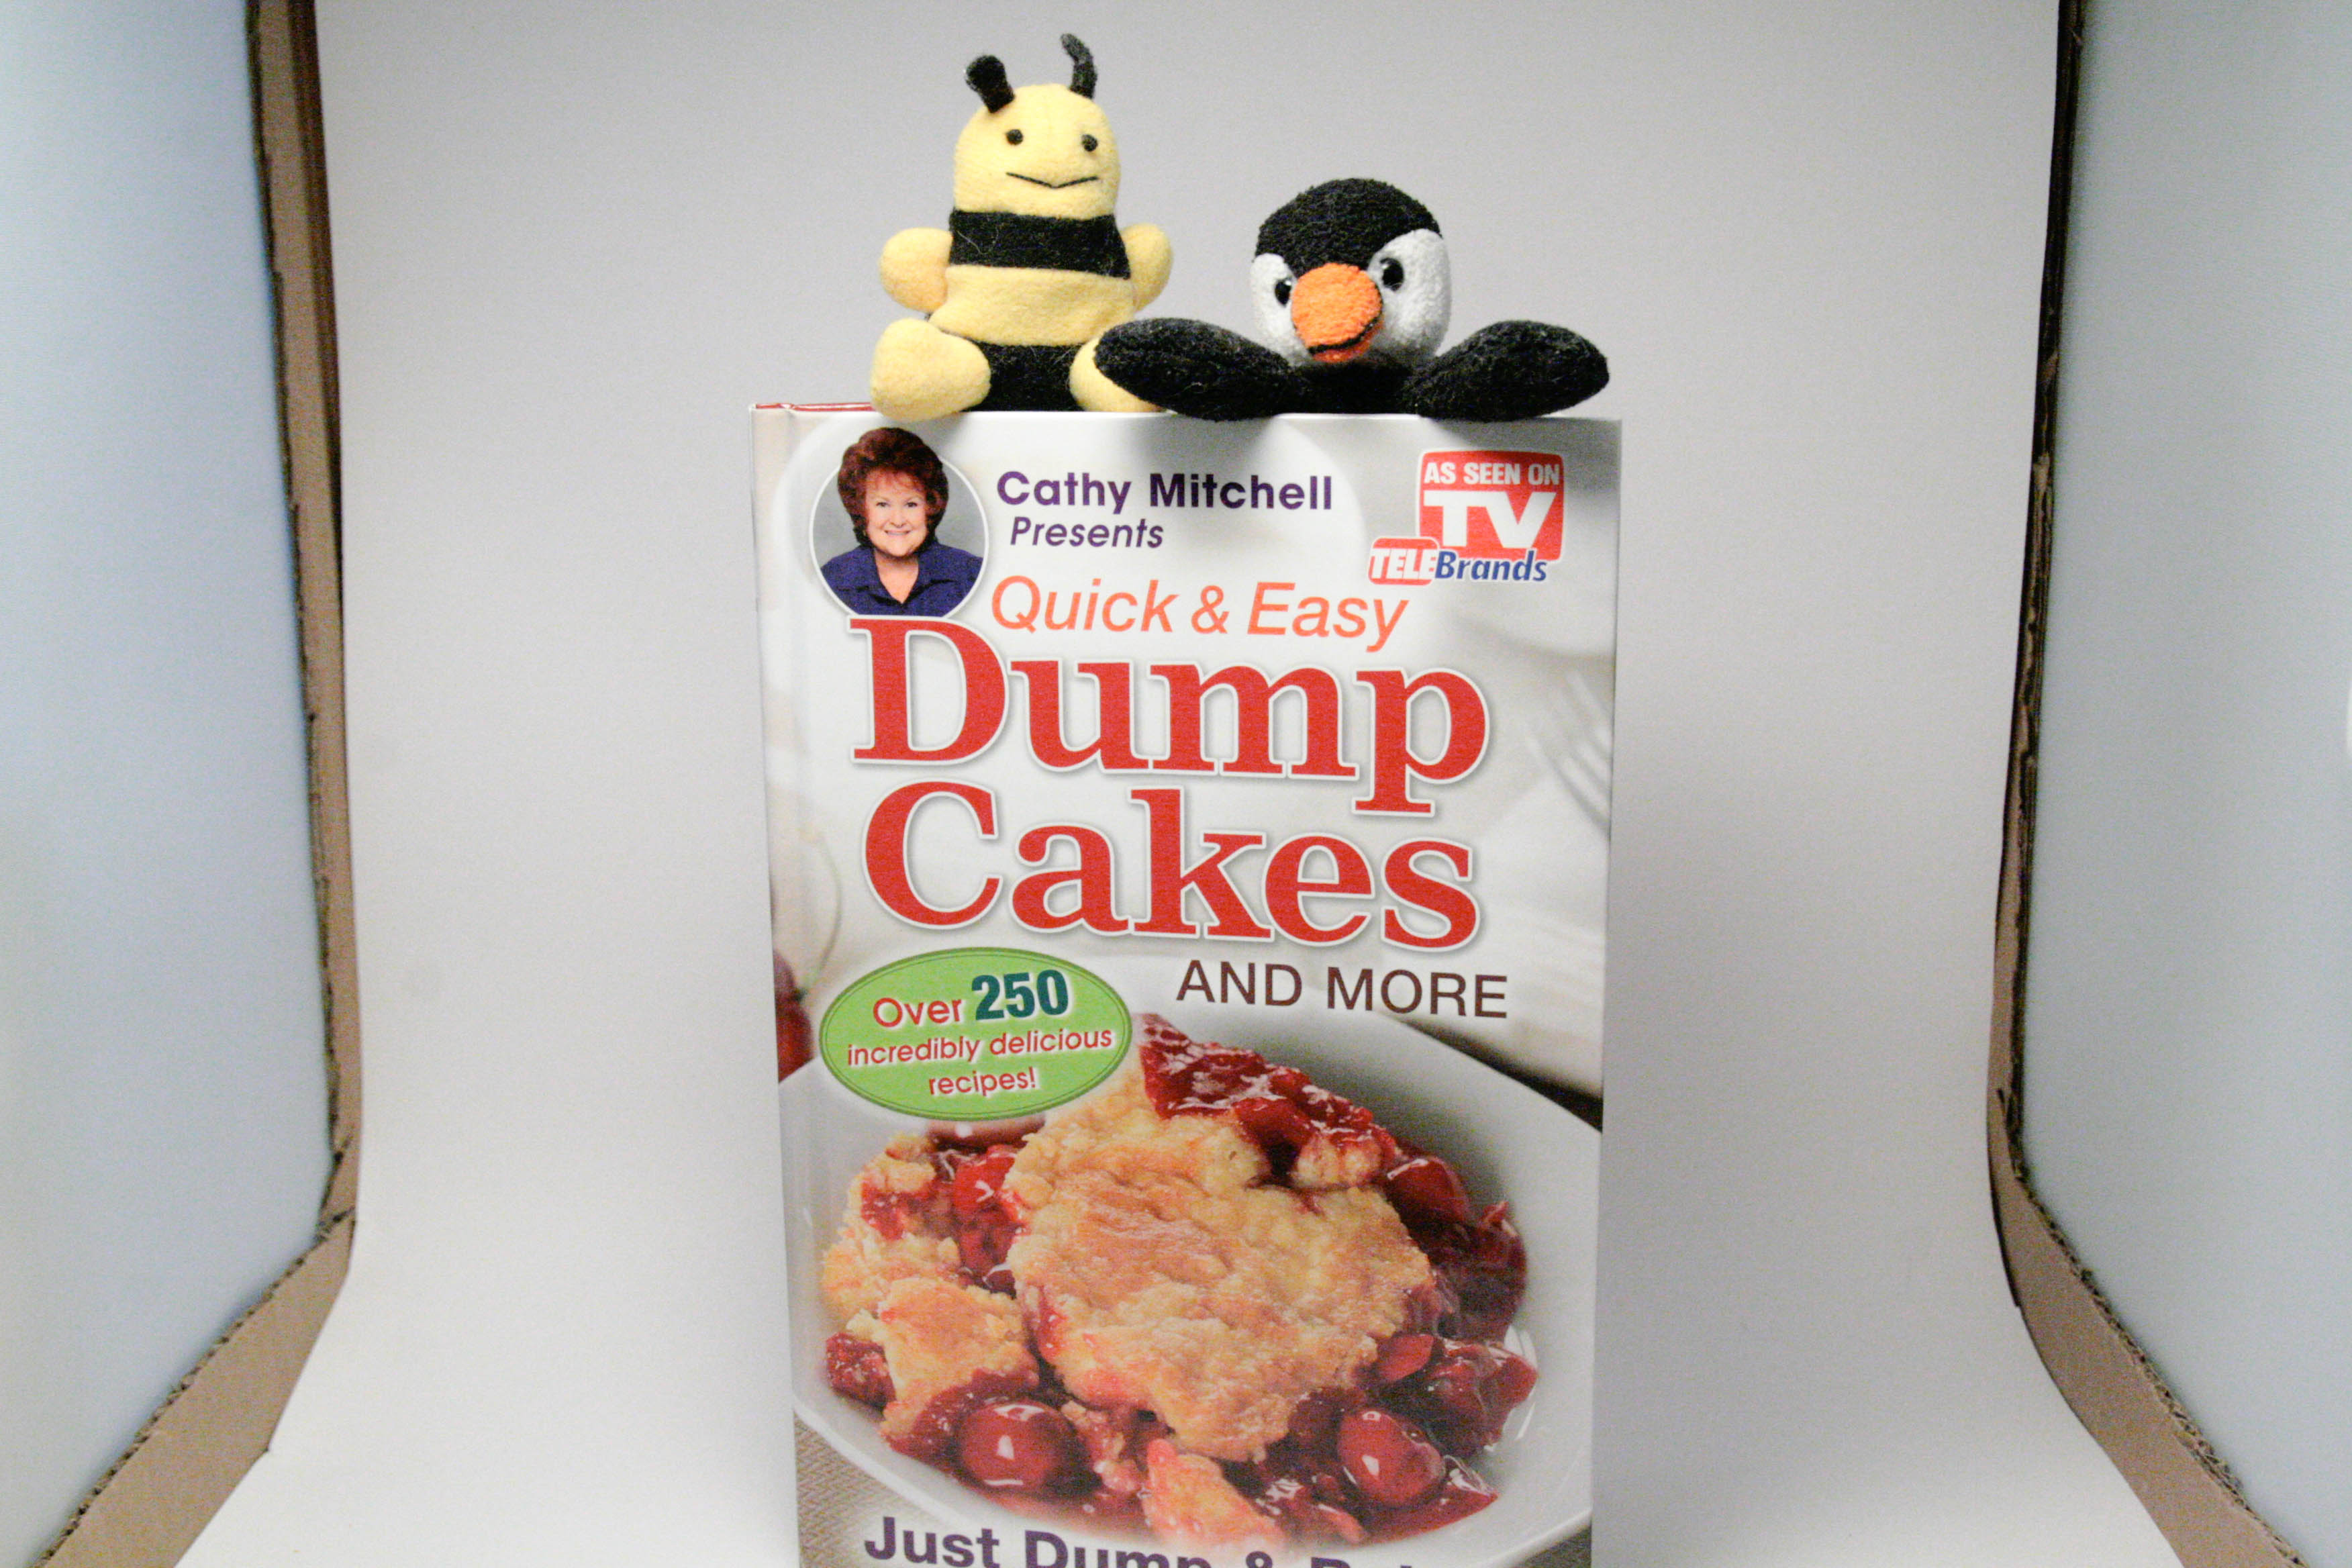 Lets eat dumps for dinner i finally cooked from that dump dinners anyway just about a year ago i undertook a harrowing cookbook journey deep into unknown territory when i cooked a cake called the dump cake dump cake forumfinder